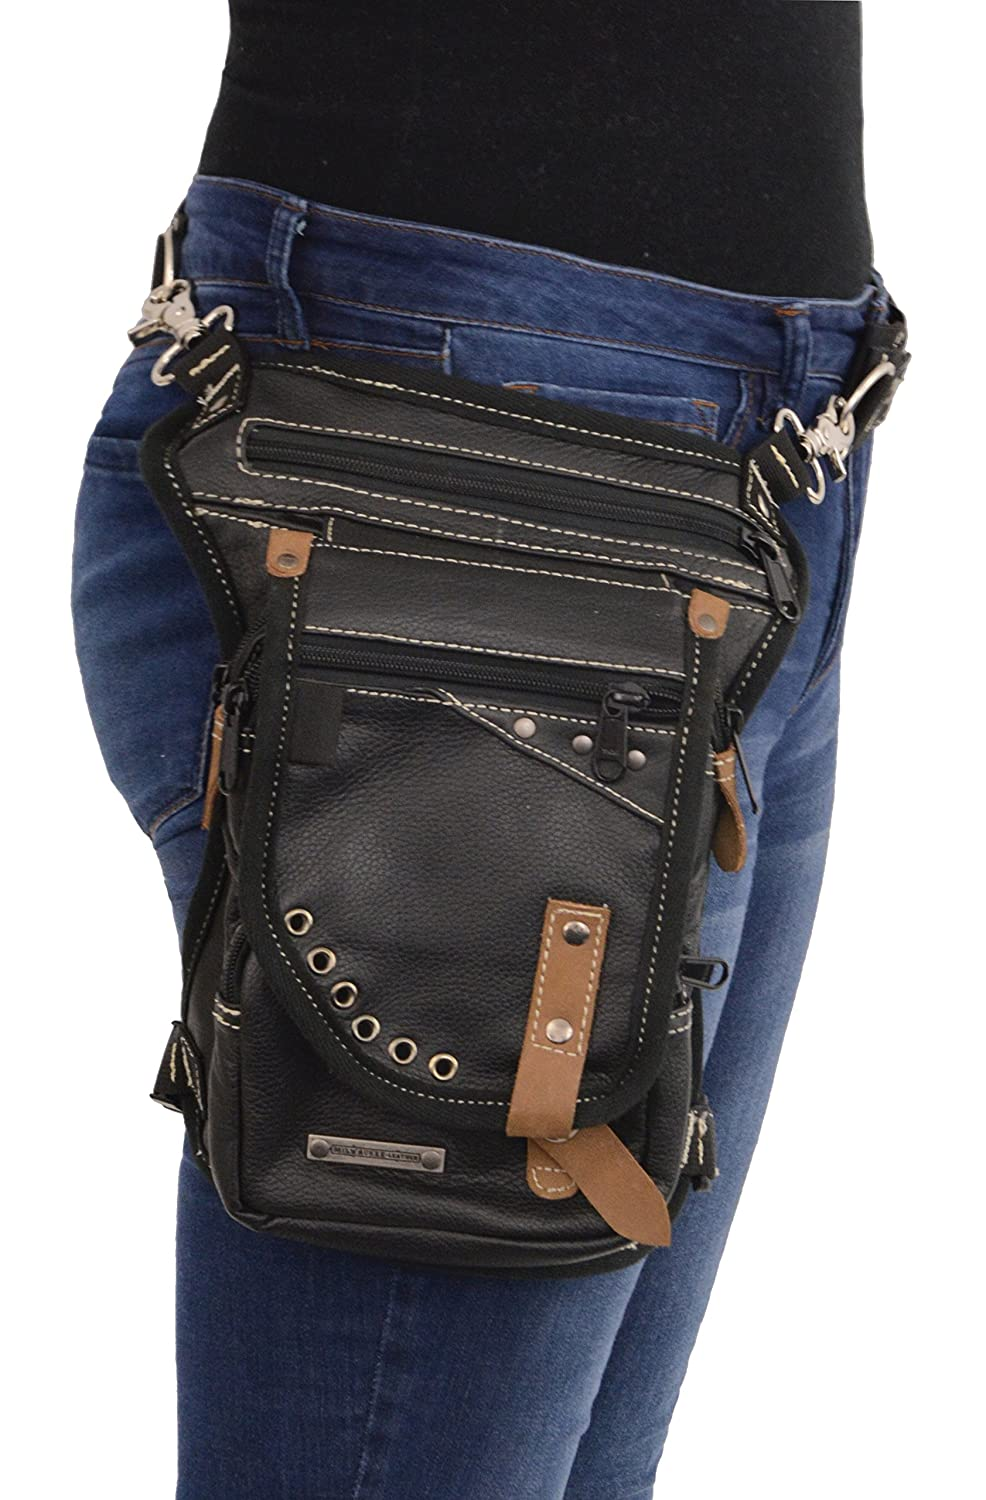 Milwaukee Leather MP8890 Black Carry Leather Thigh Bag with Waist Belt Shaf International Inc.